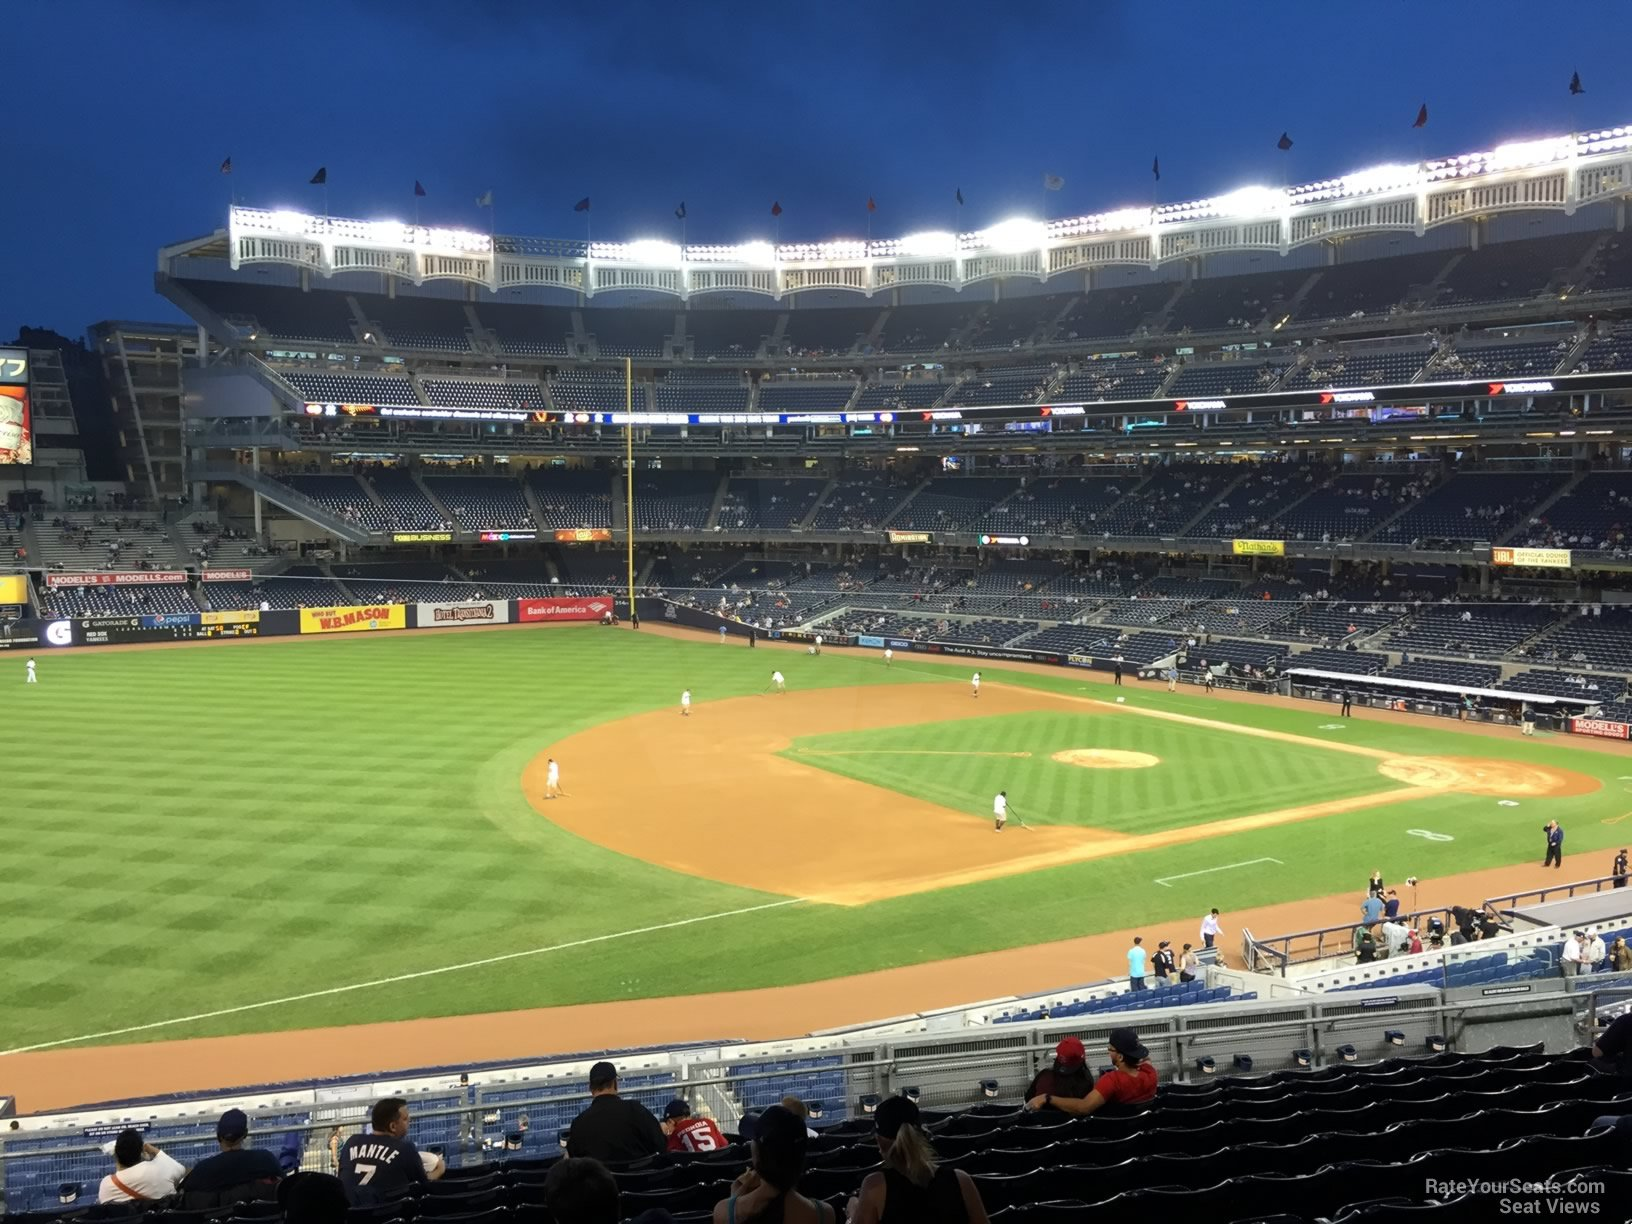 New York Yankees Seat View for Yankee Stadium Section 227B, Row 13